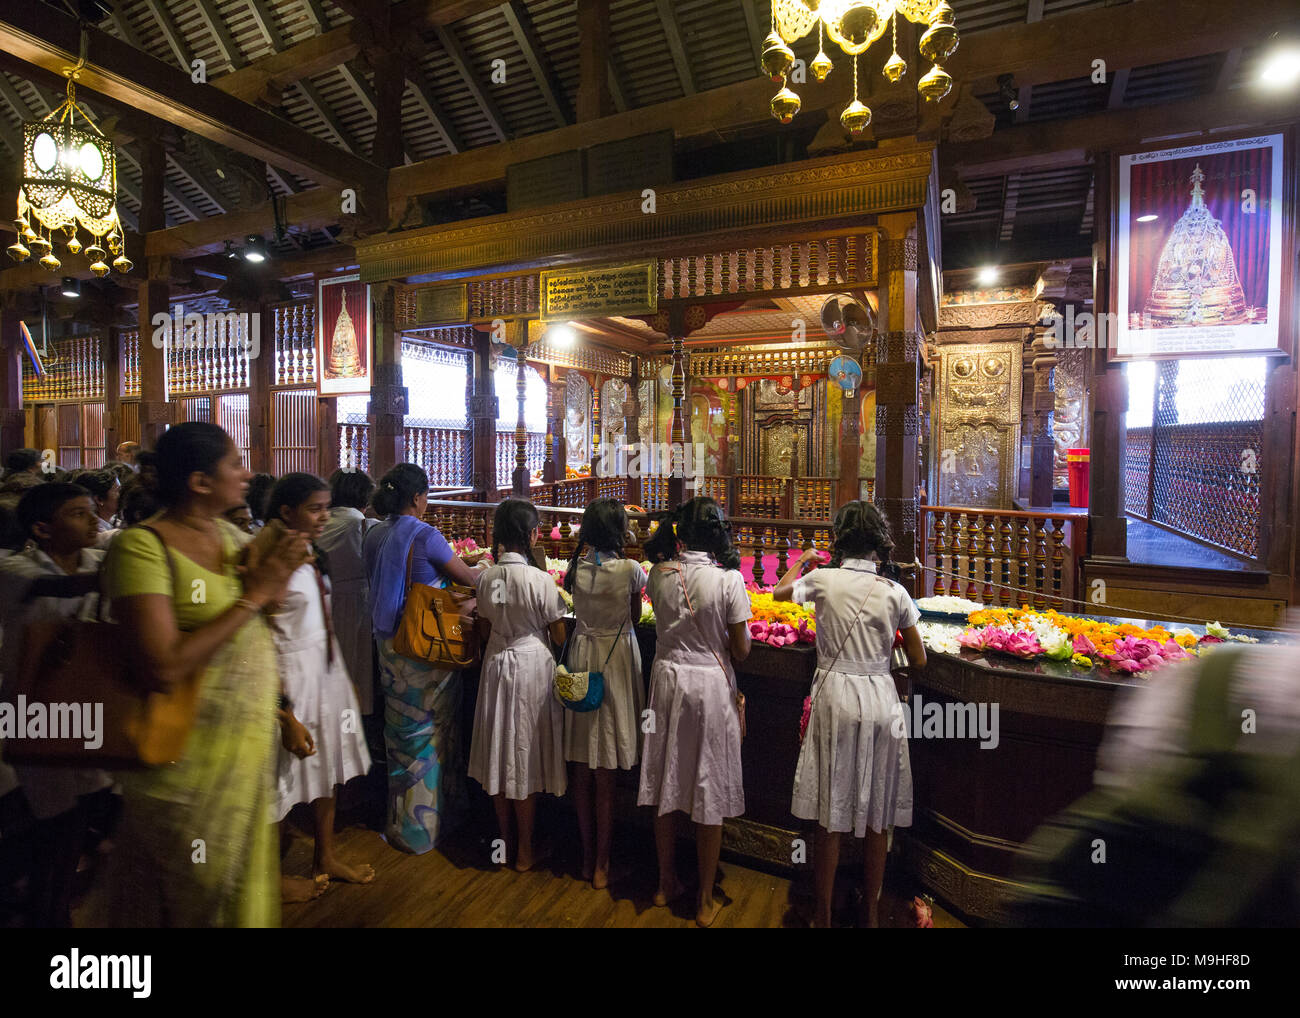 School students and teachers praying inside Temple of the Tooth, Kandy, Sri Lanka, Asia. - Stock Image